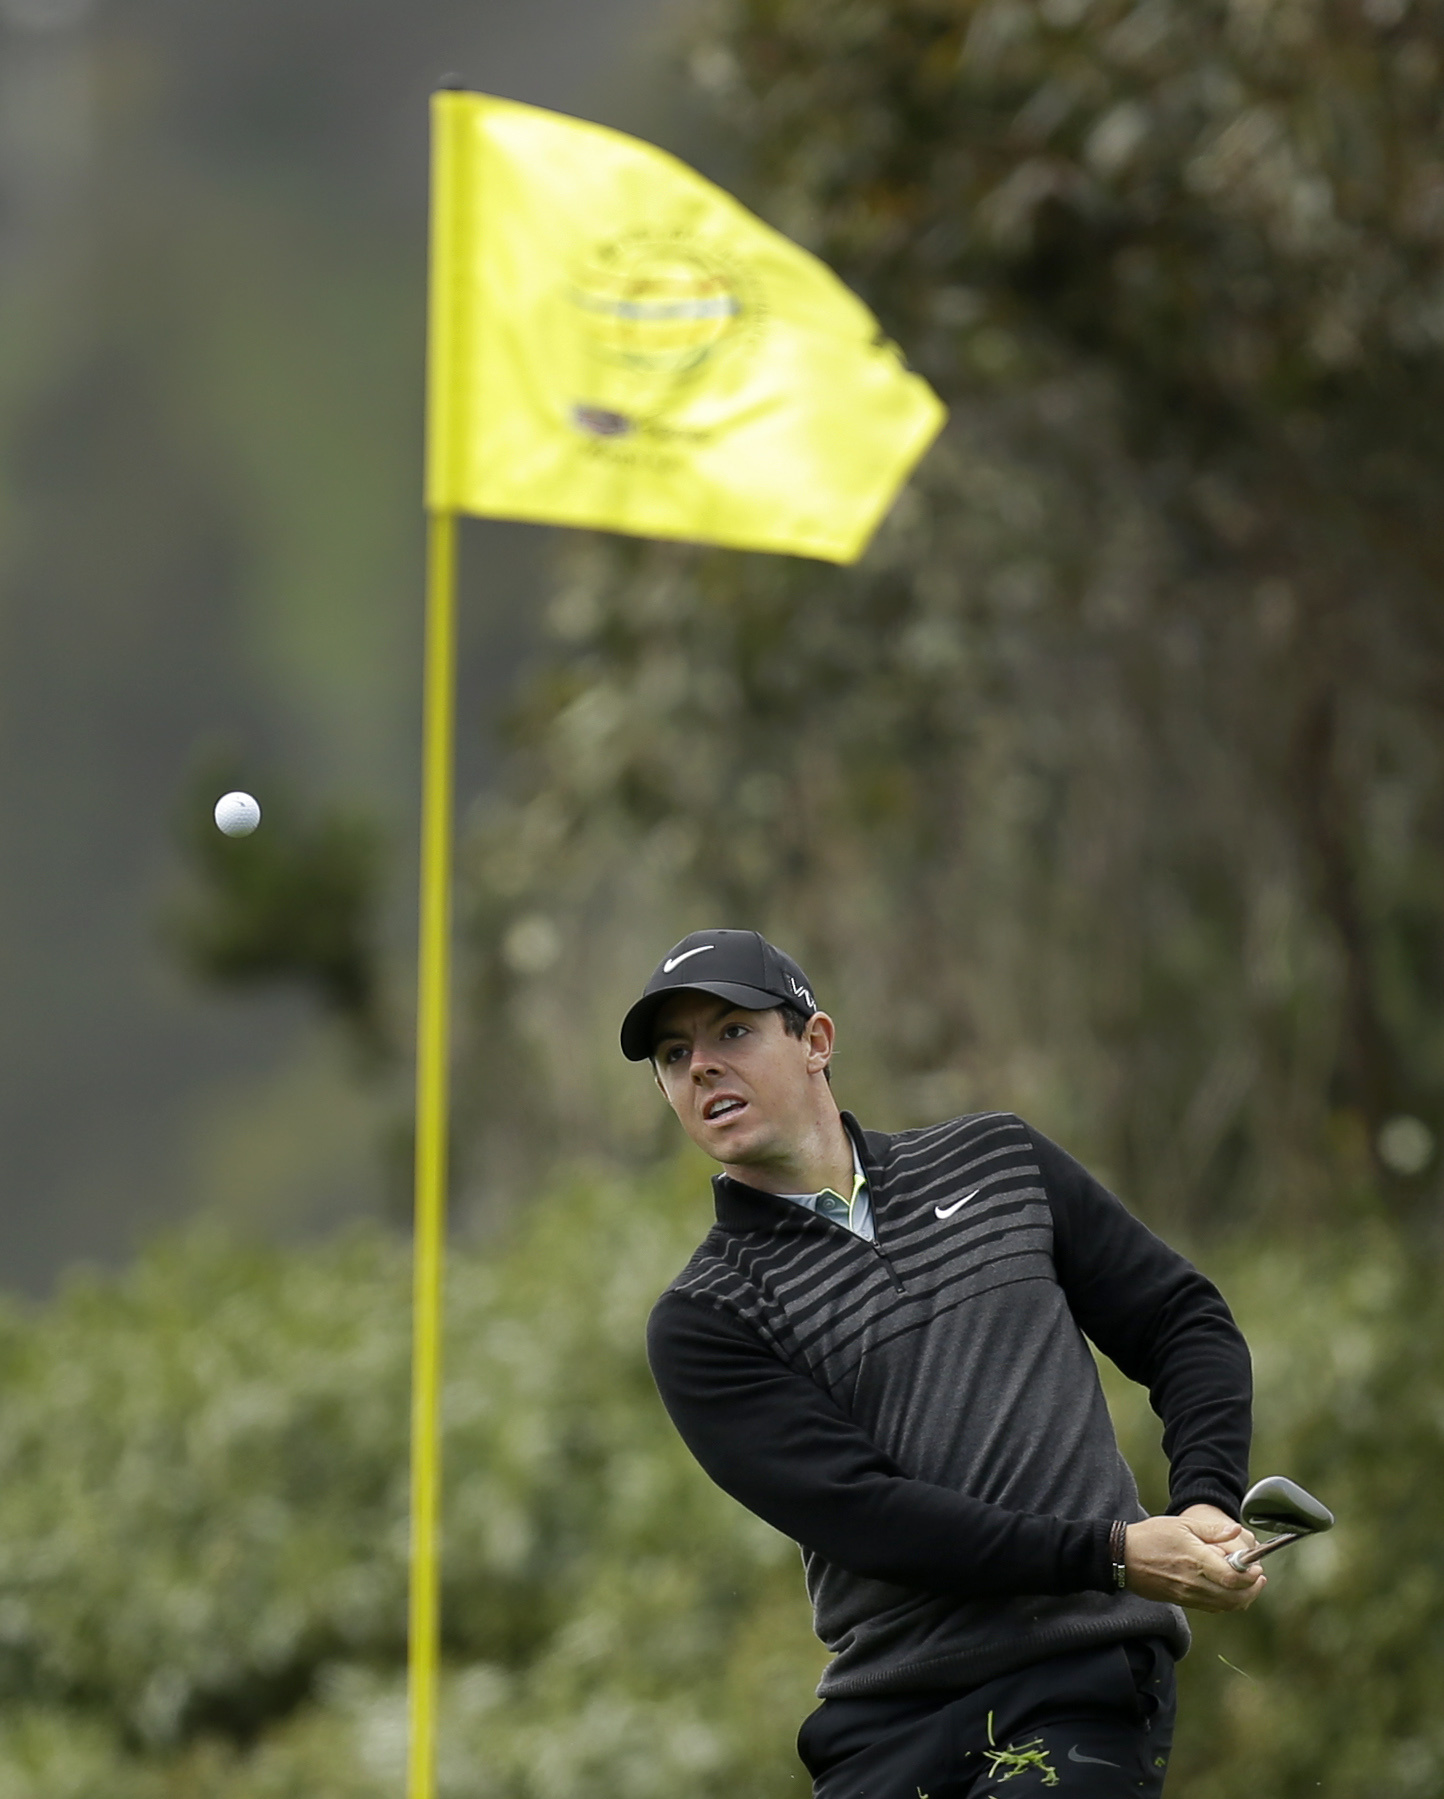 Rory McIlroy, of Northern Ireland, hits out of the rough on the 13th hole of the Match Play Championship golf tournament at TCP Harding Park on Sunday, May 3, 2015, in San Francisco. McIlroy won the tournament. (AP Photo/Ben Margot)